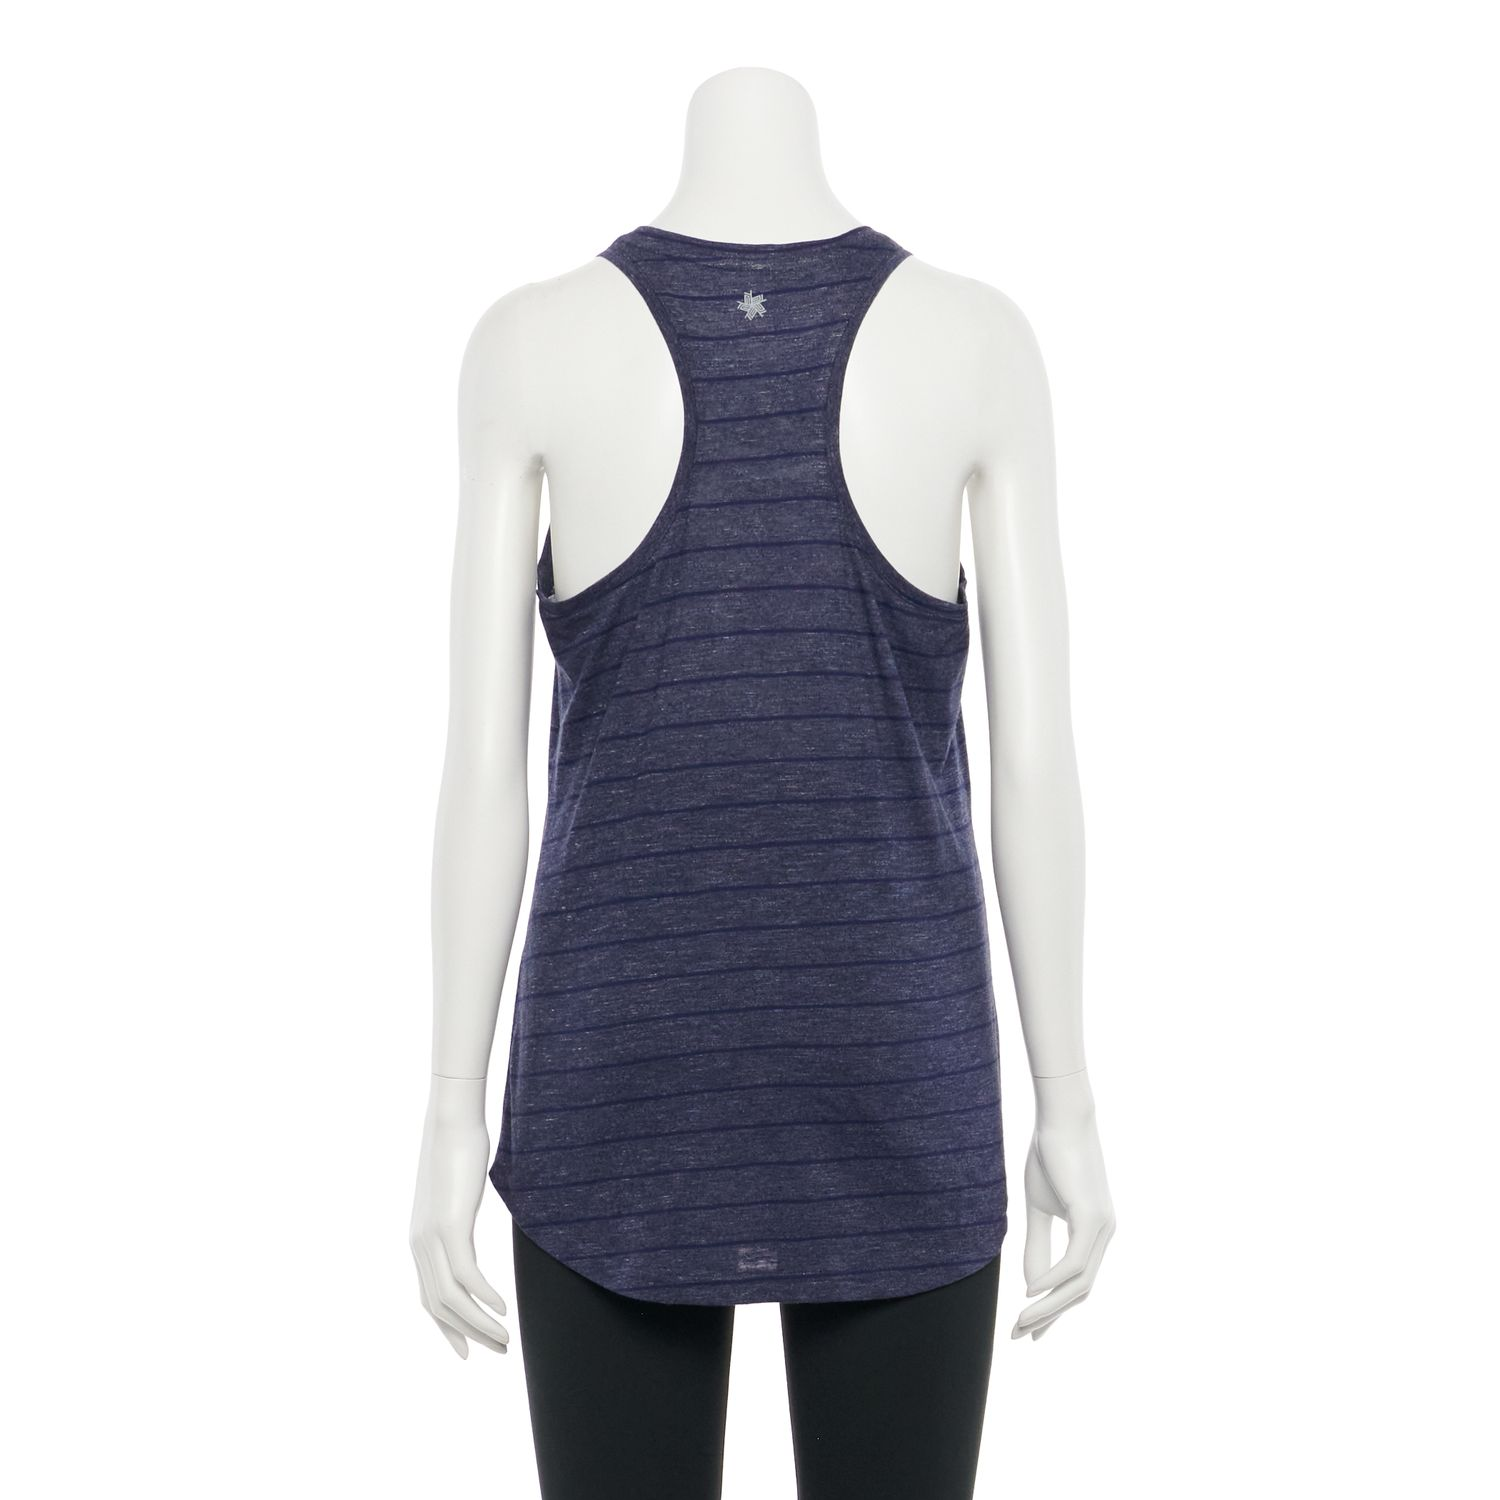 Asics Juniors Girls Blue Active Tank Top Court Tennis Fitness Exercise Sporty L